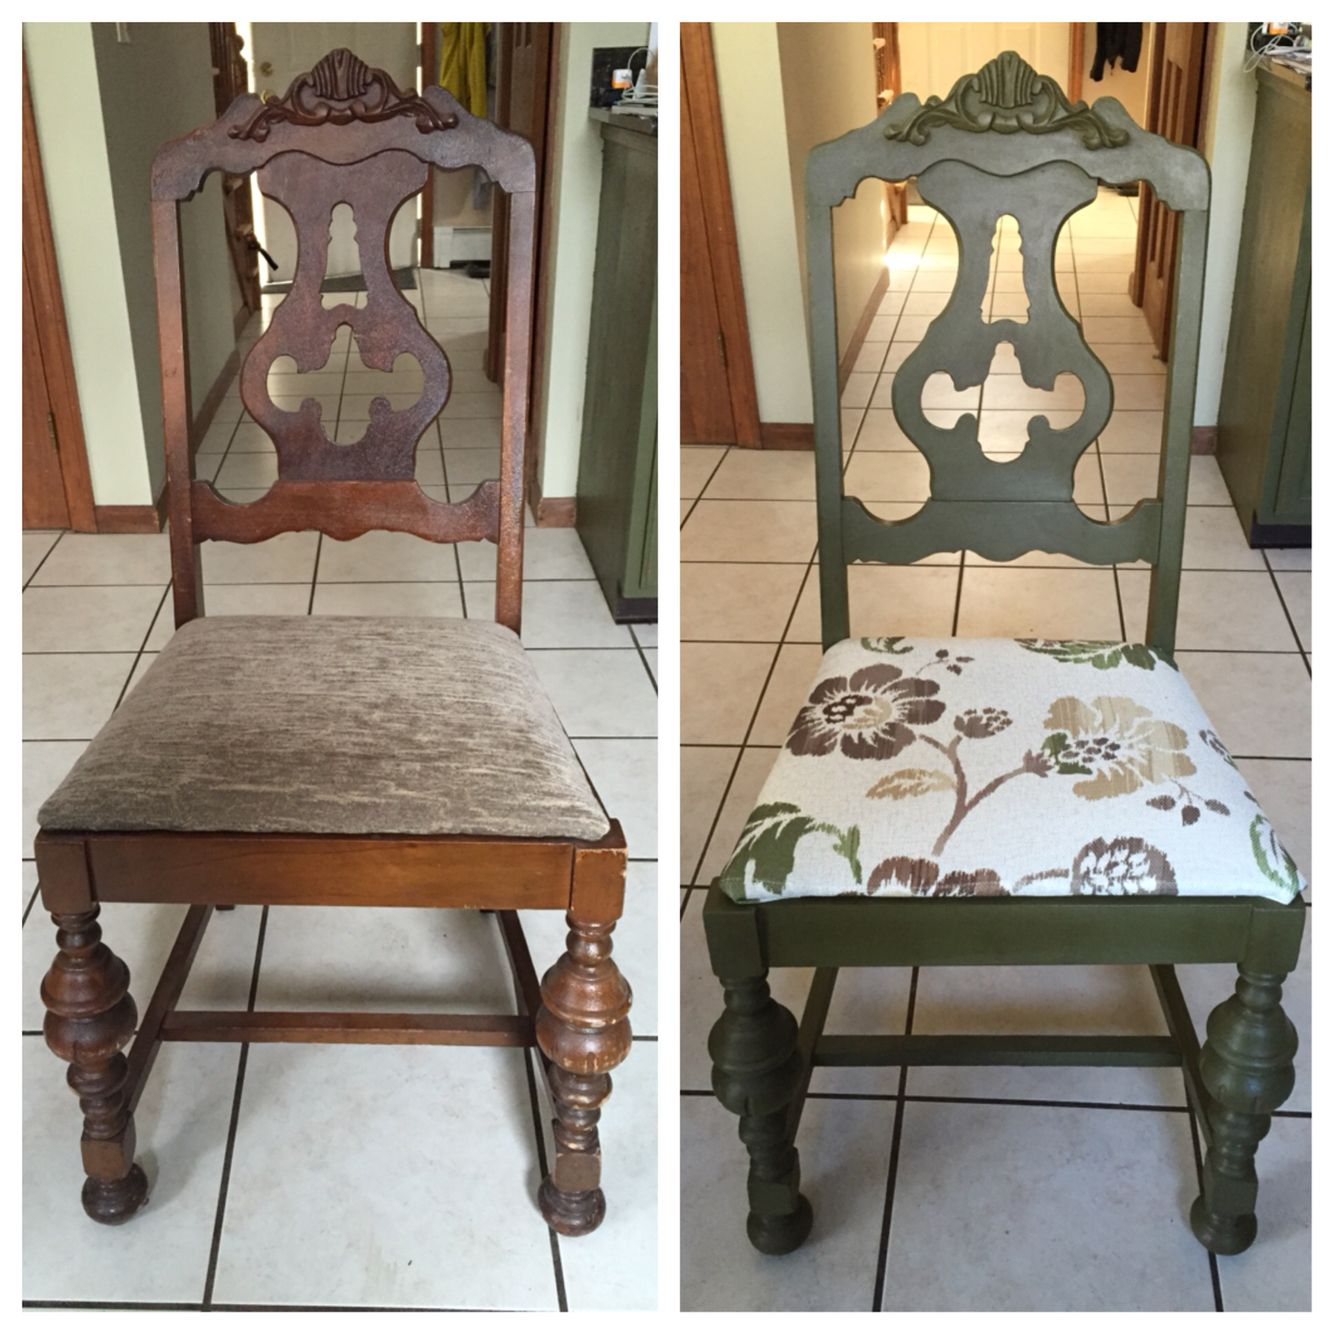 Refurbished Chairs Refurbished Chairs My Annie Sloan Makeovers In 2019